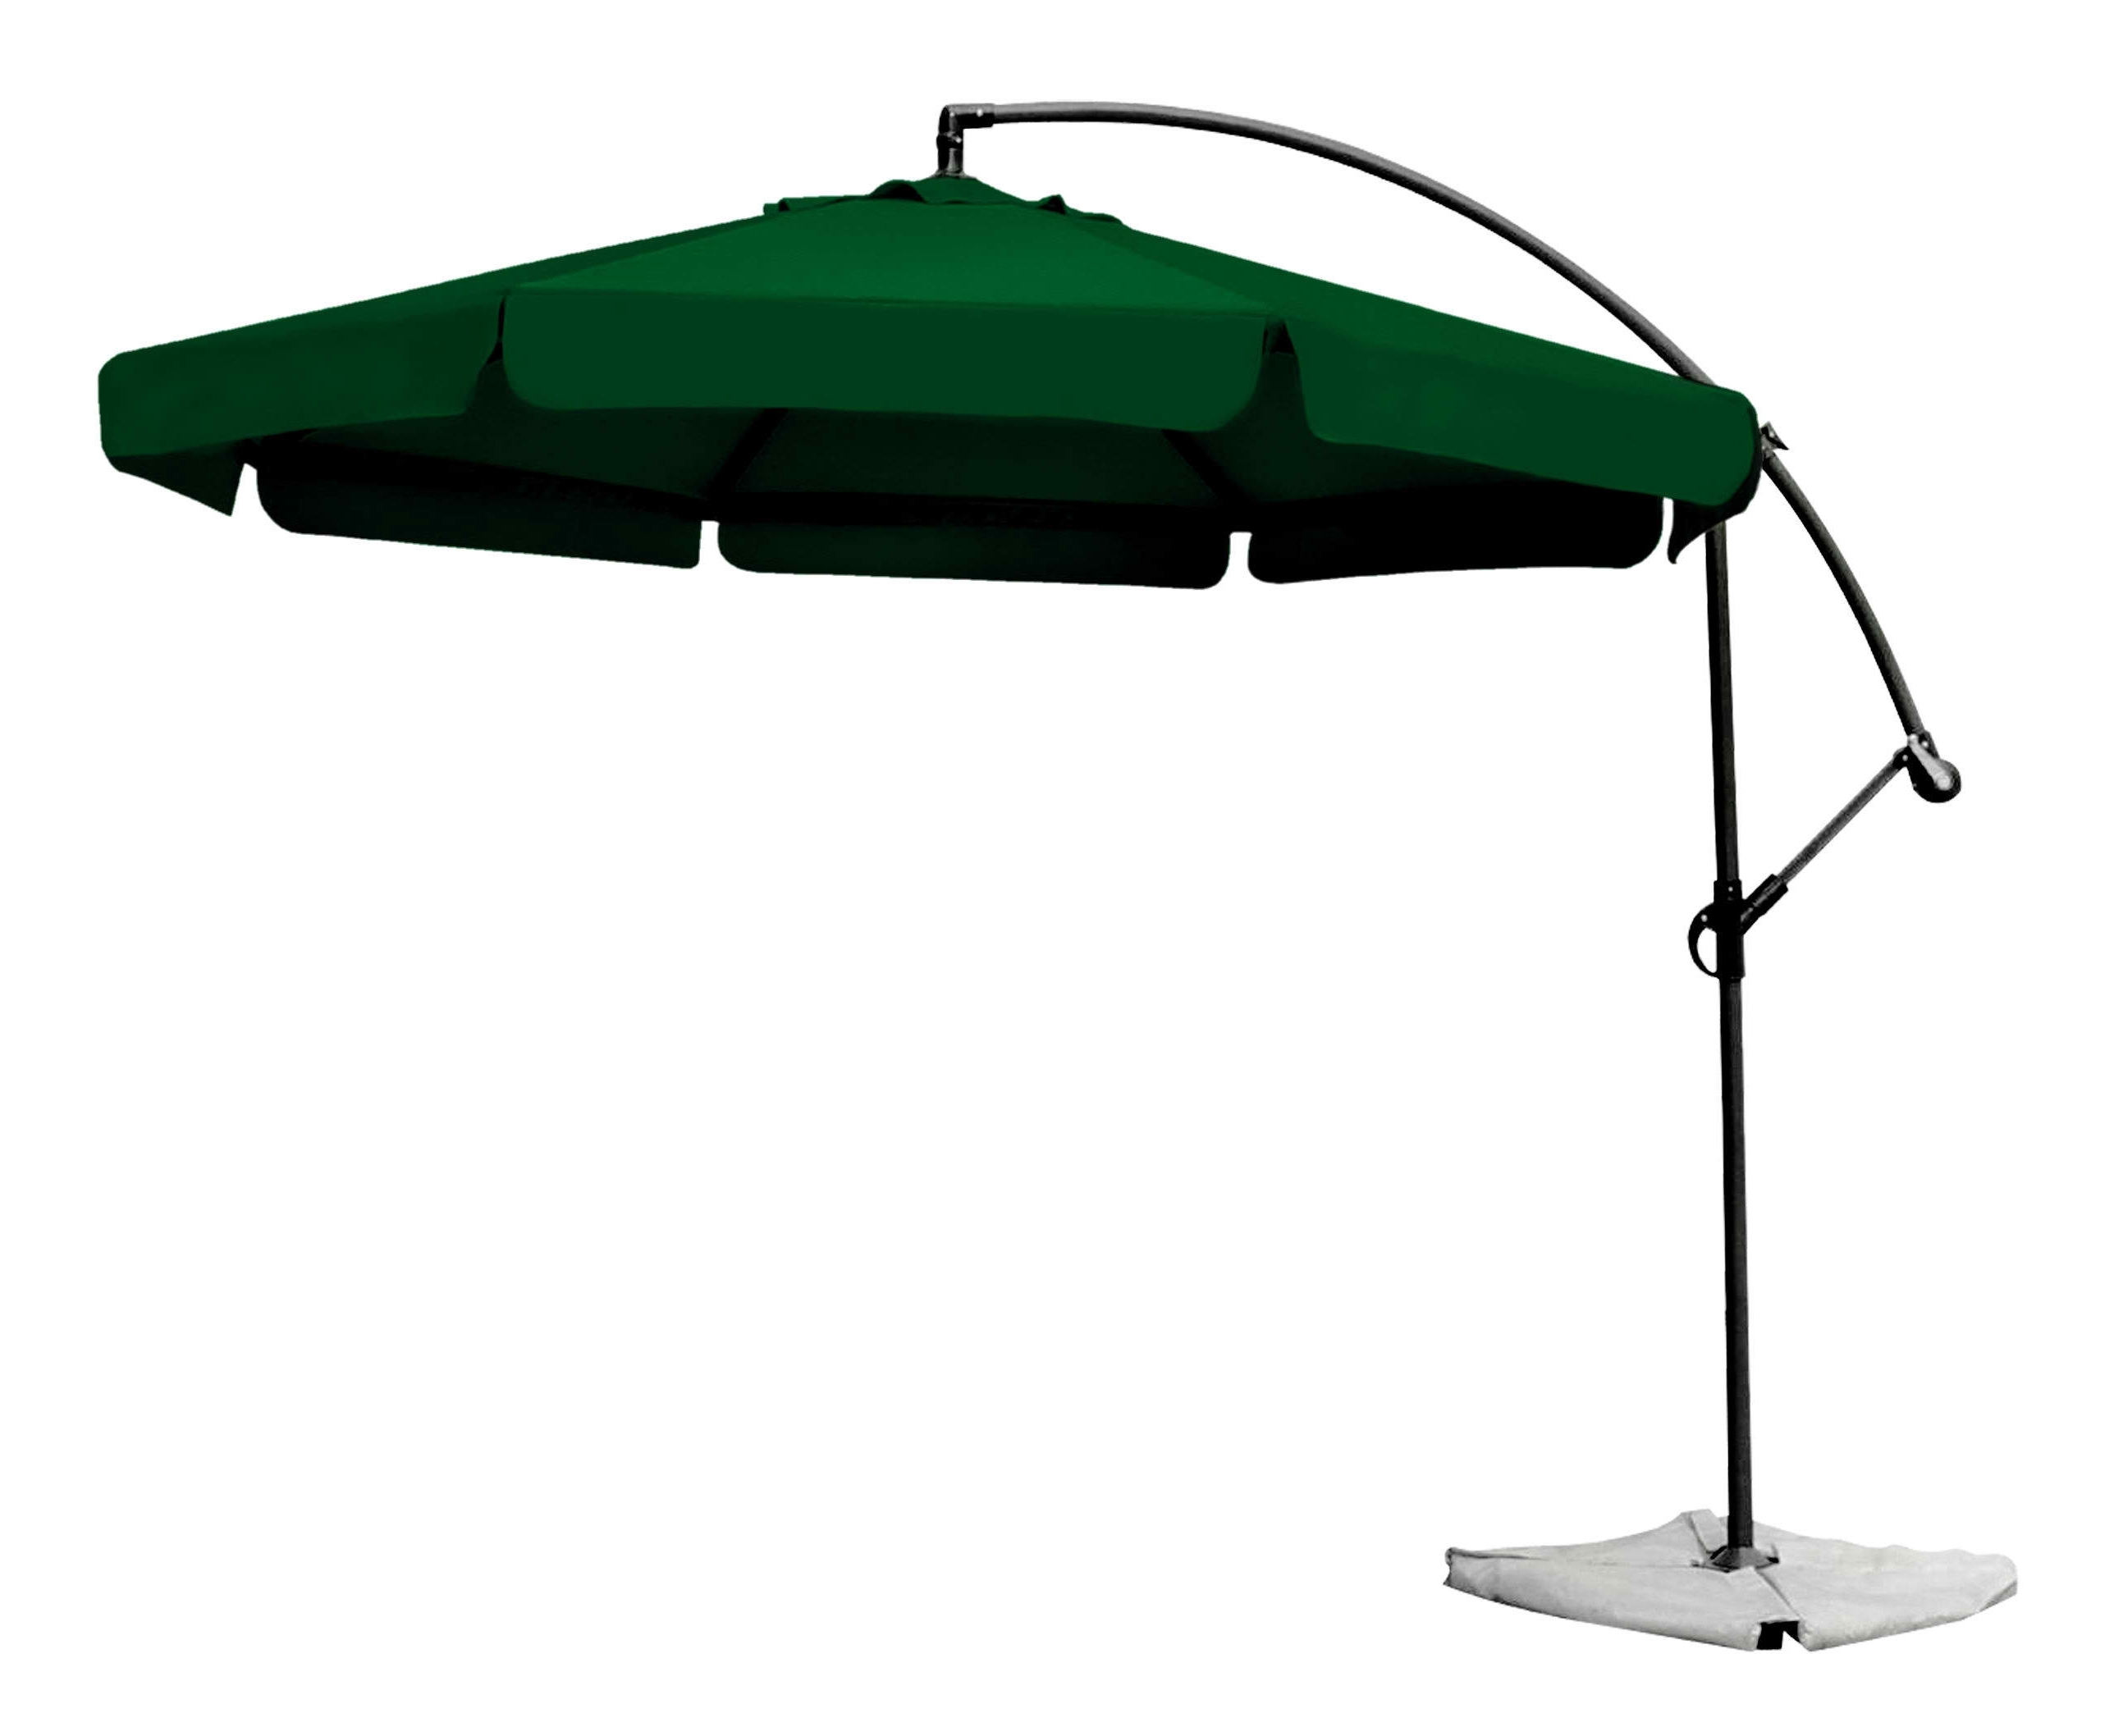 Exterior Design: Exciting Cantilever Patio Umbrella For Inspiring Pertaining To Well Known Green Patio Umbrellas (View 2 of 20)